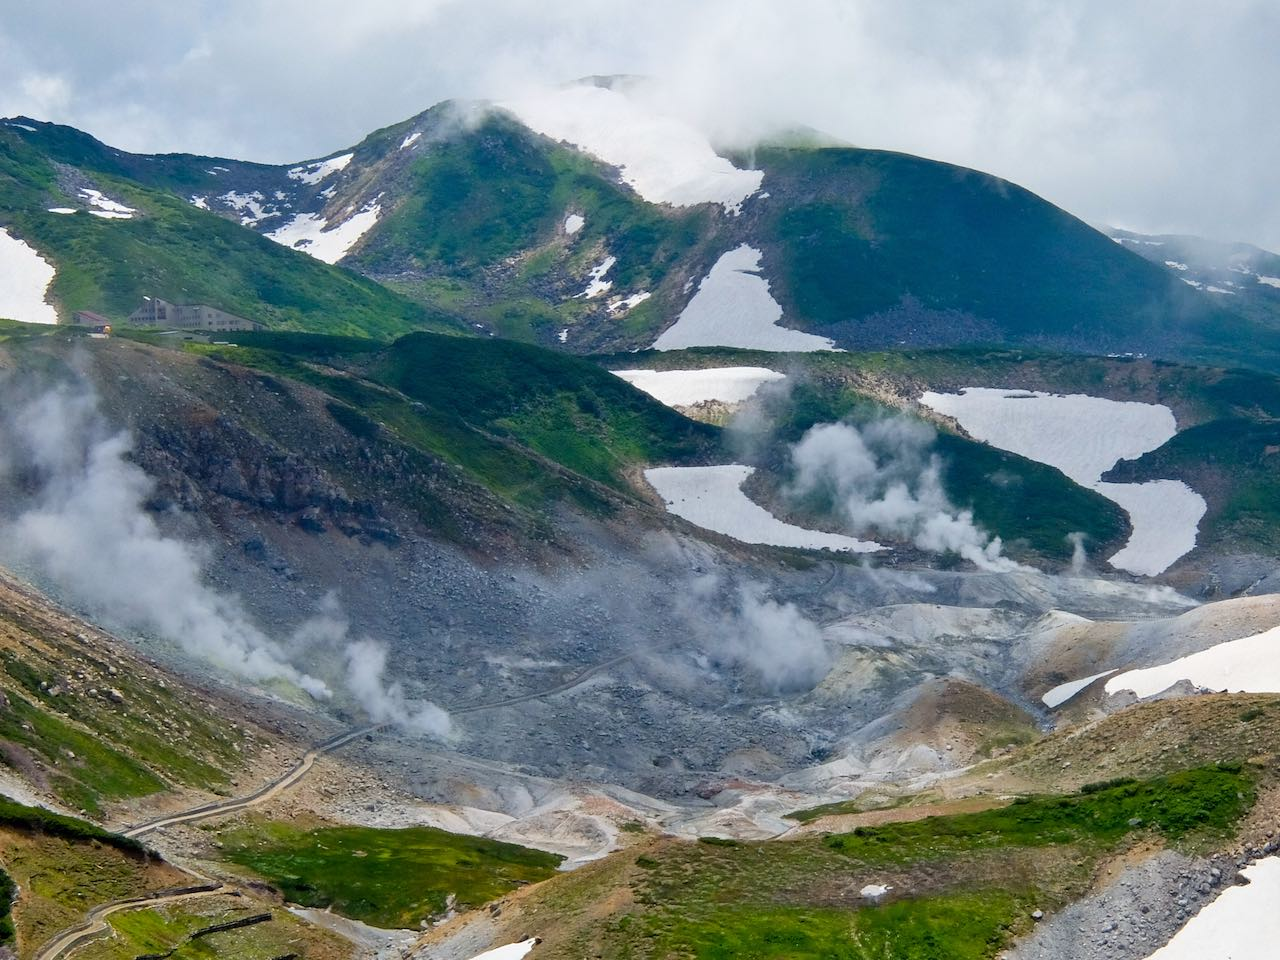 Hiking from Tateyama - Hell Valley